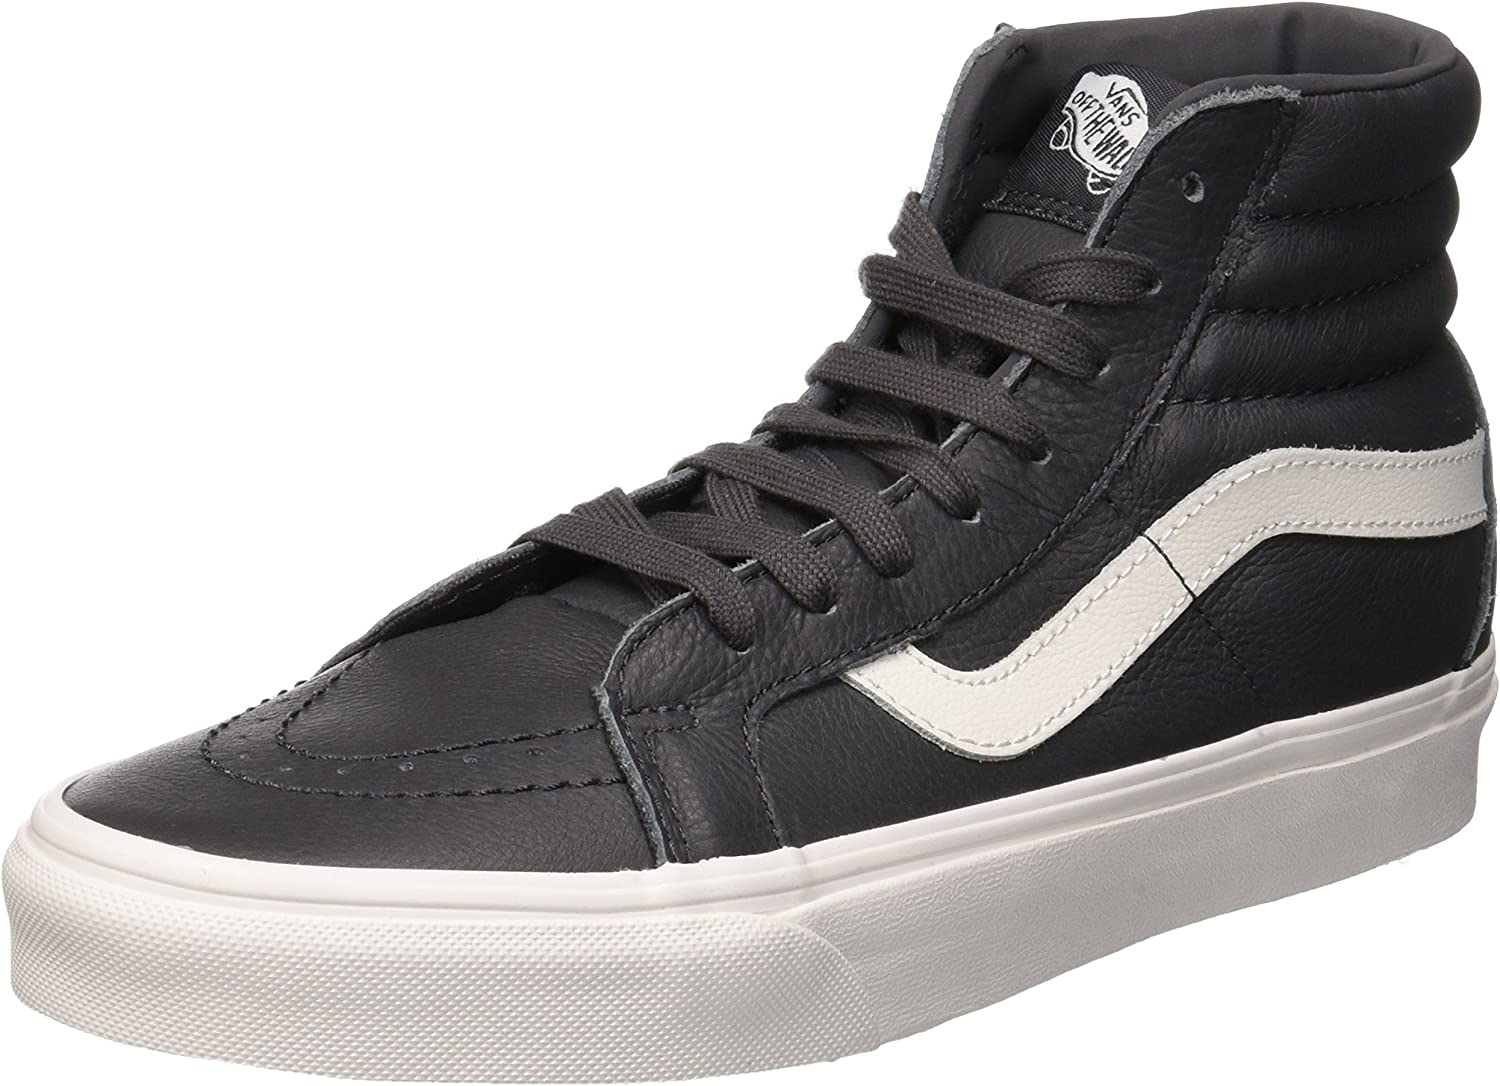 Vans Unisex Adults' Sk8-Hi Reissue Hi-Top Trainers